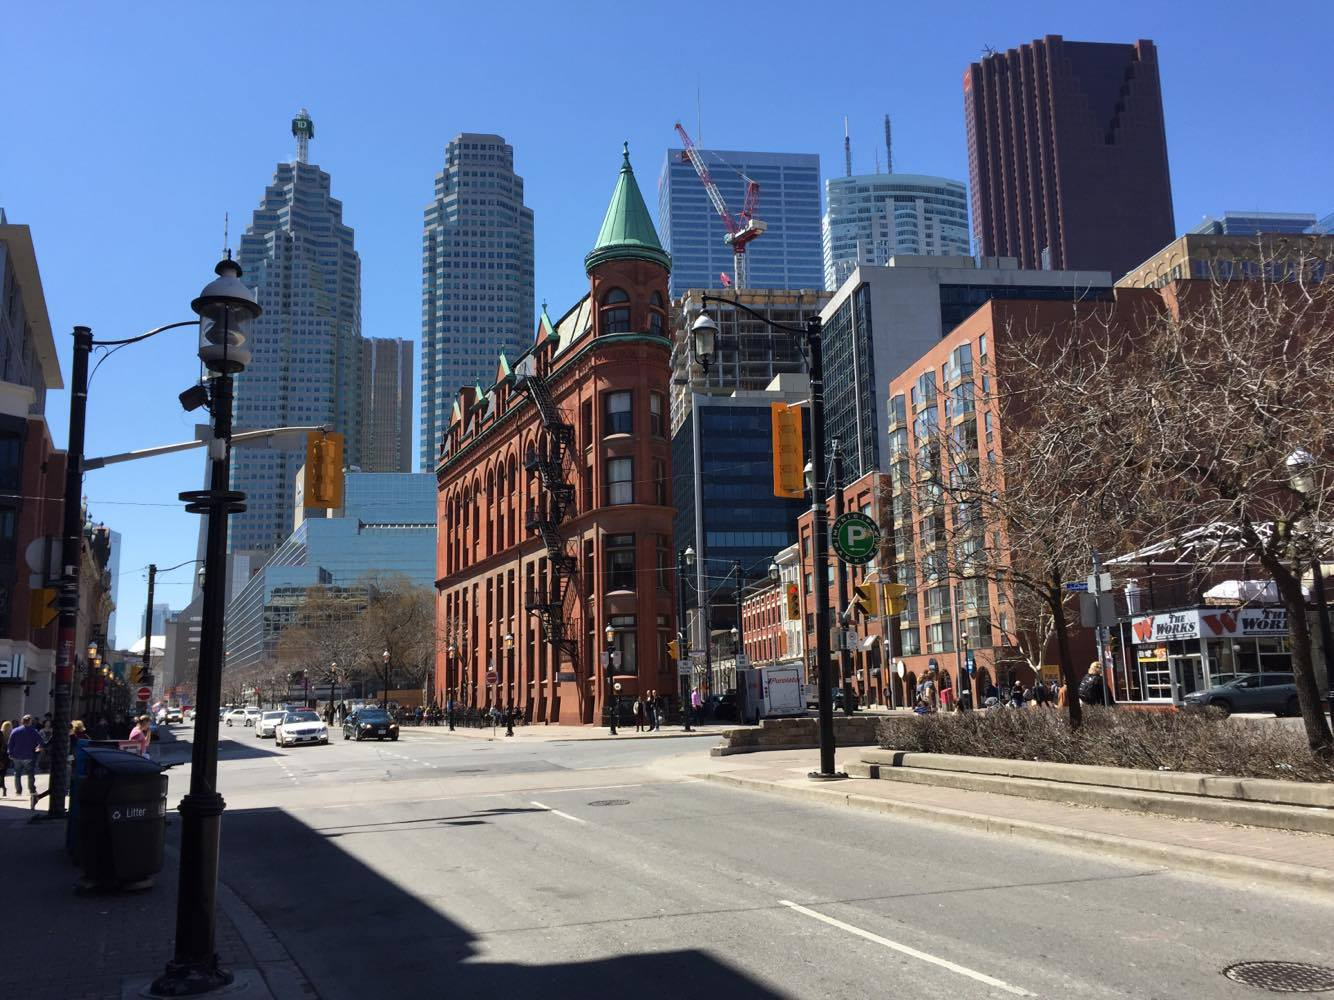 The Gooderham Building in Toronto, an example of the'flatiron' architectural style.